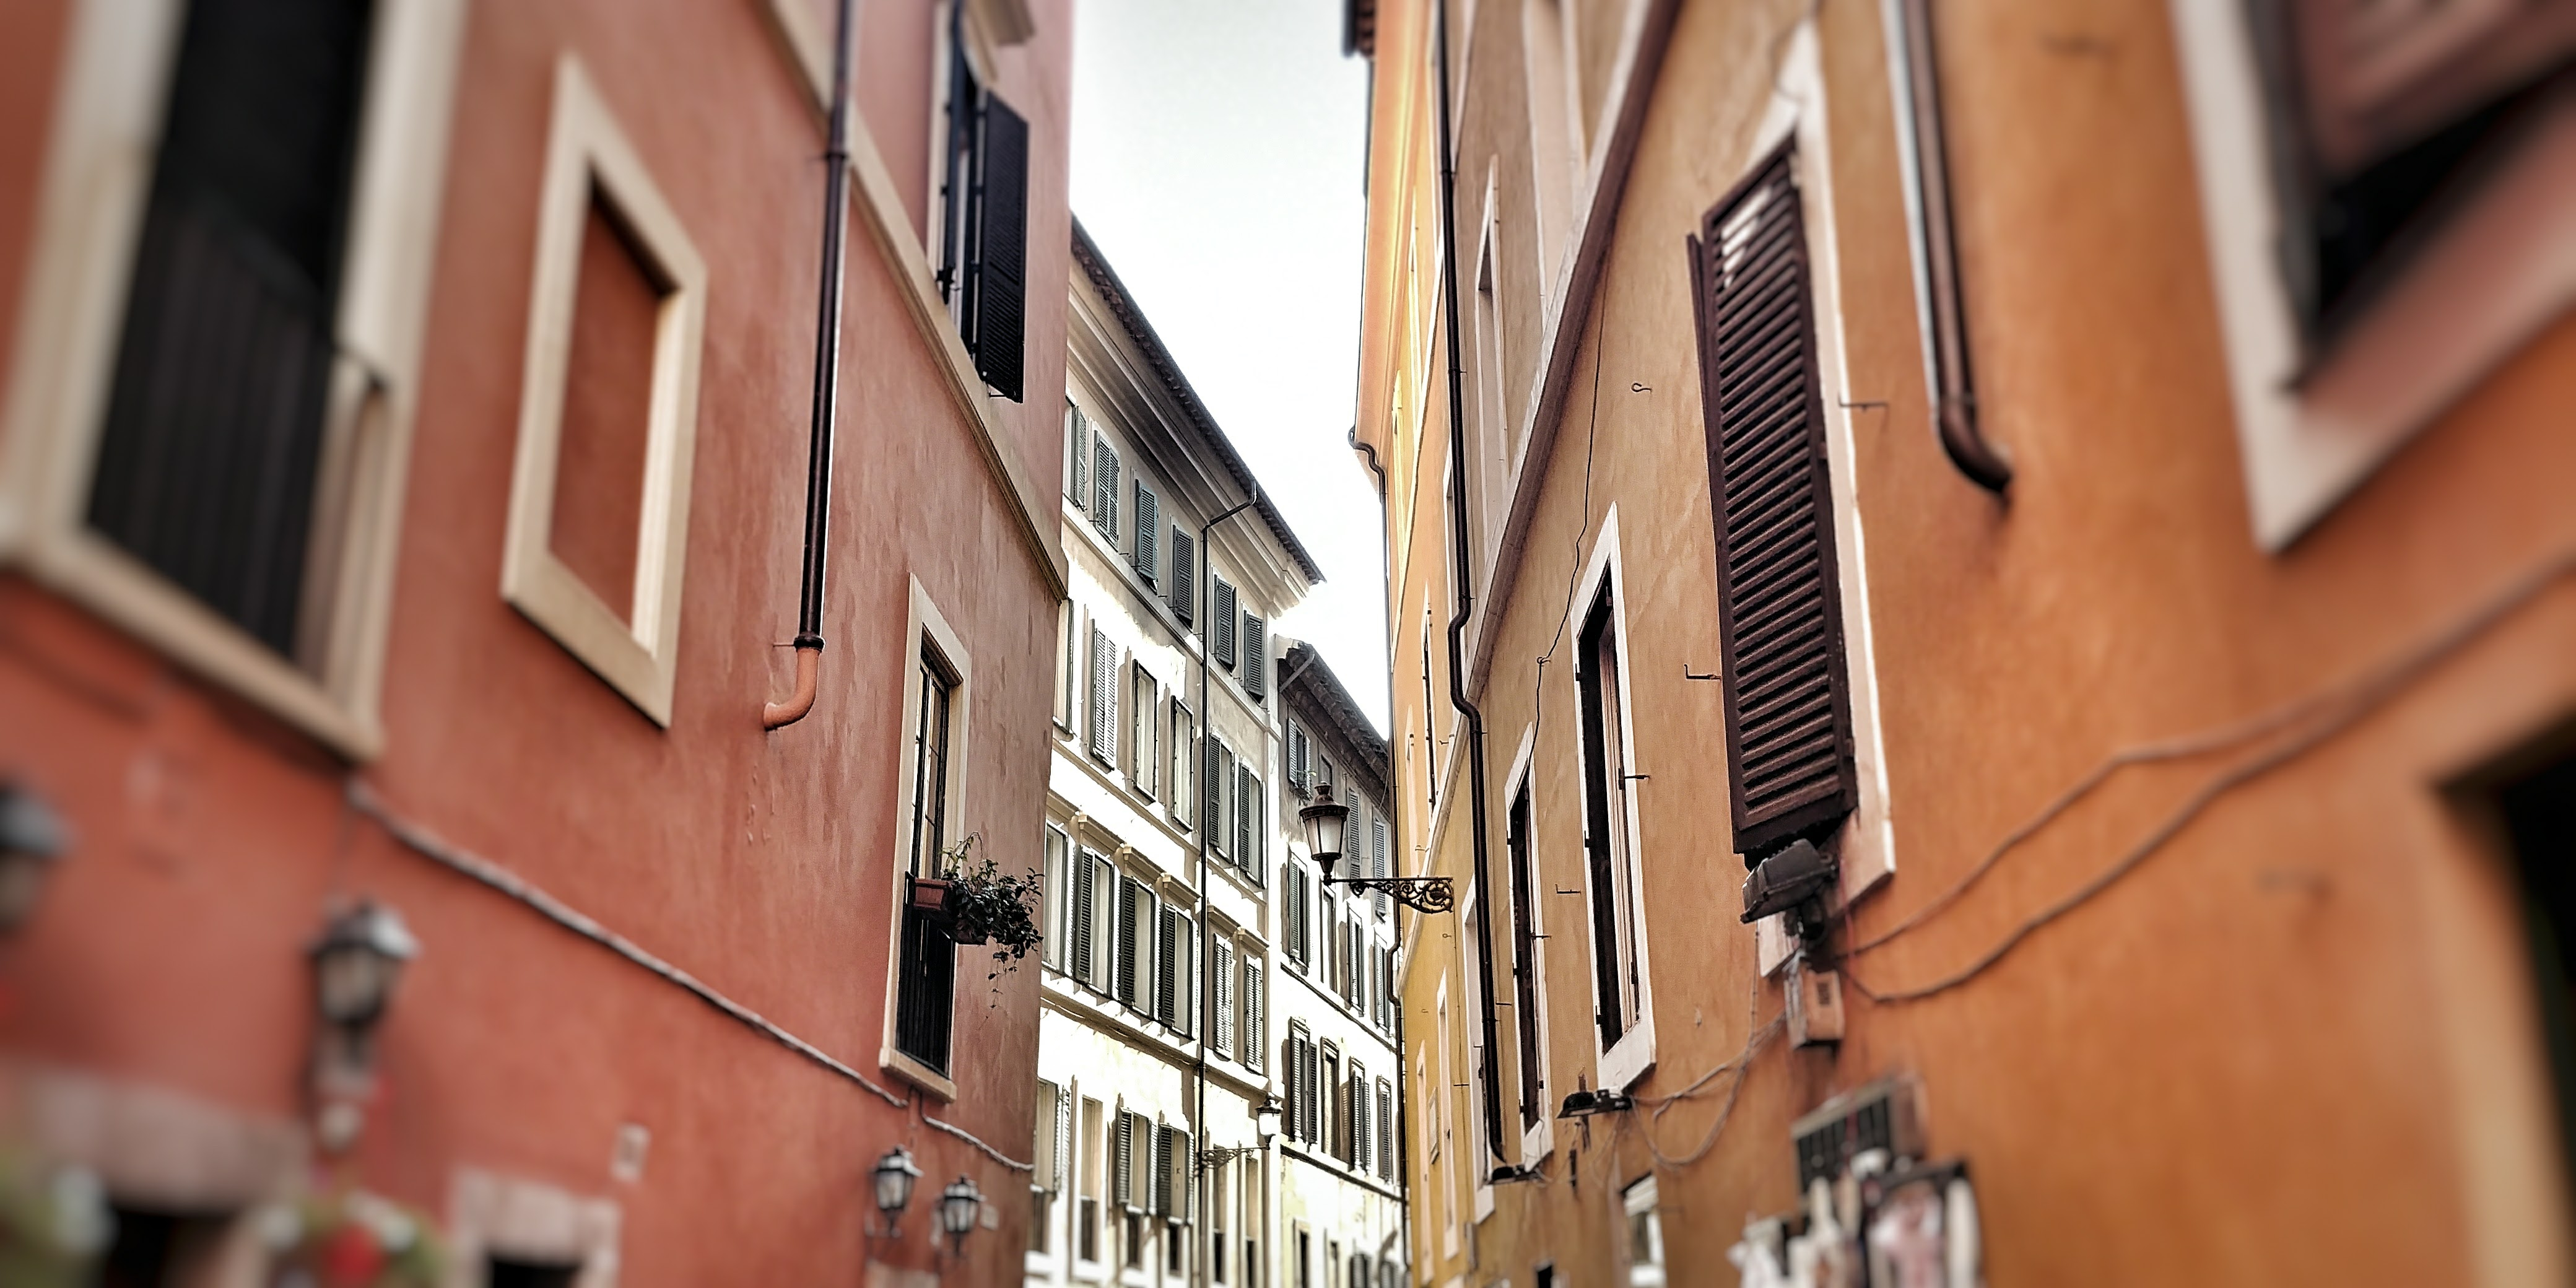 Italy: Rome and Le Marche